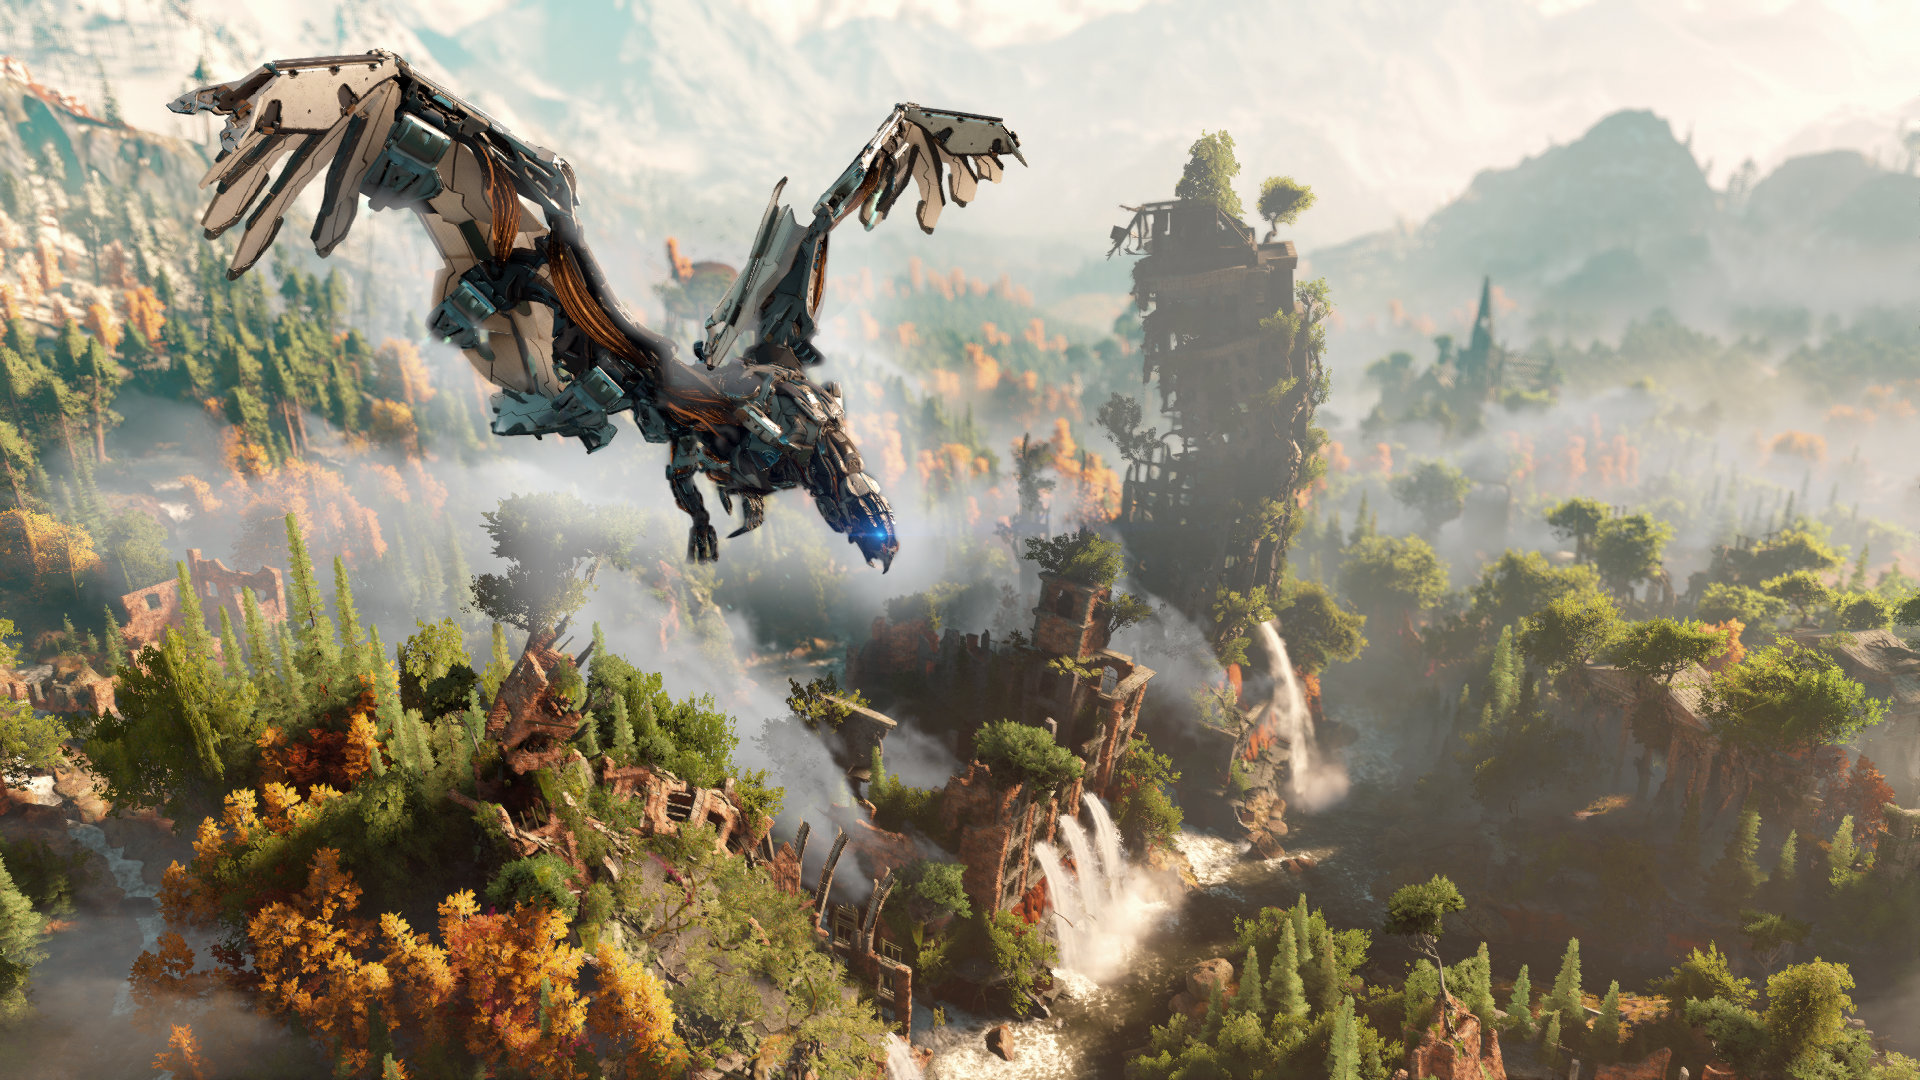 https://www.respawnfirst.com/category/guides/horizon-zero-dawn/